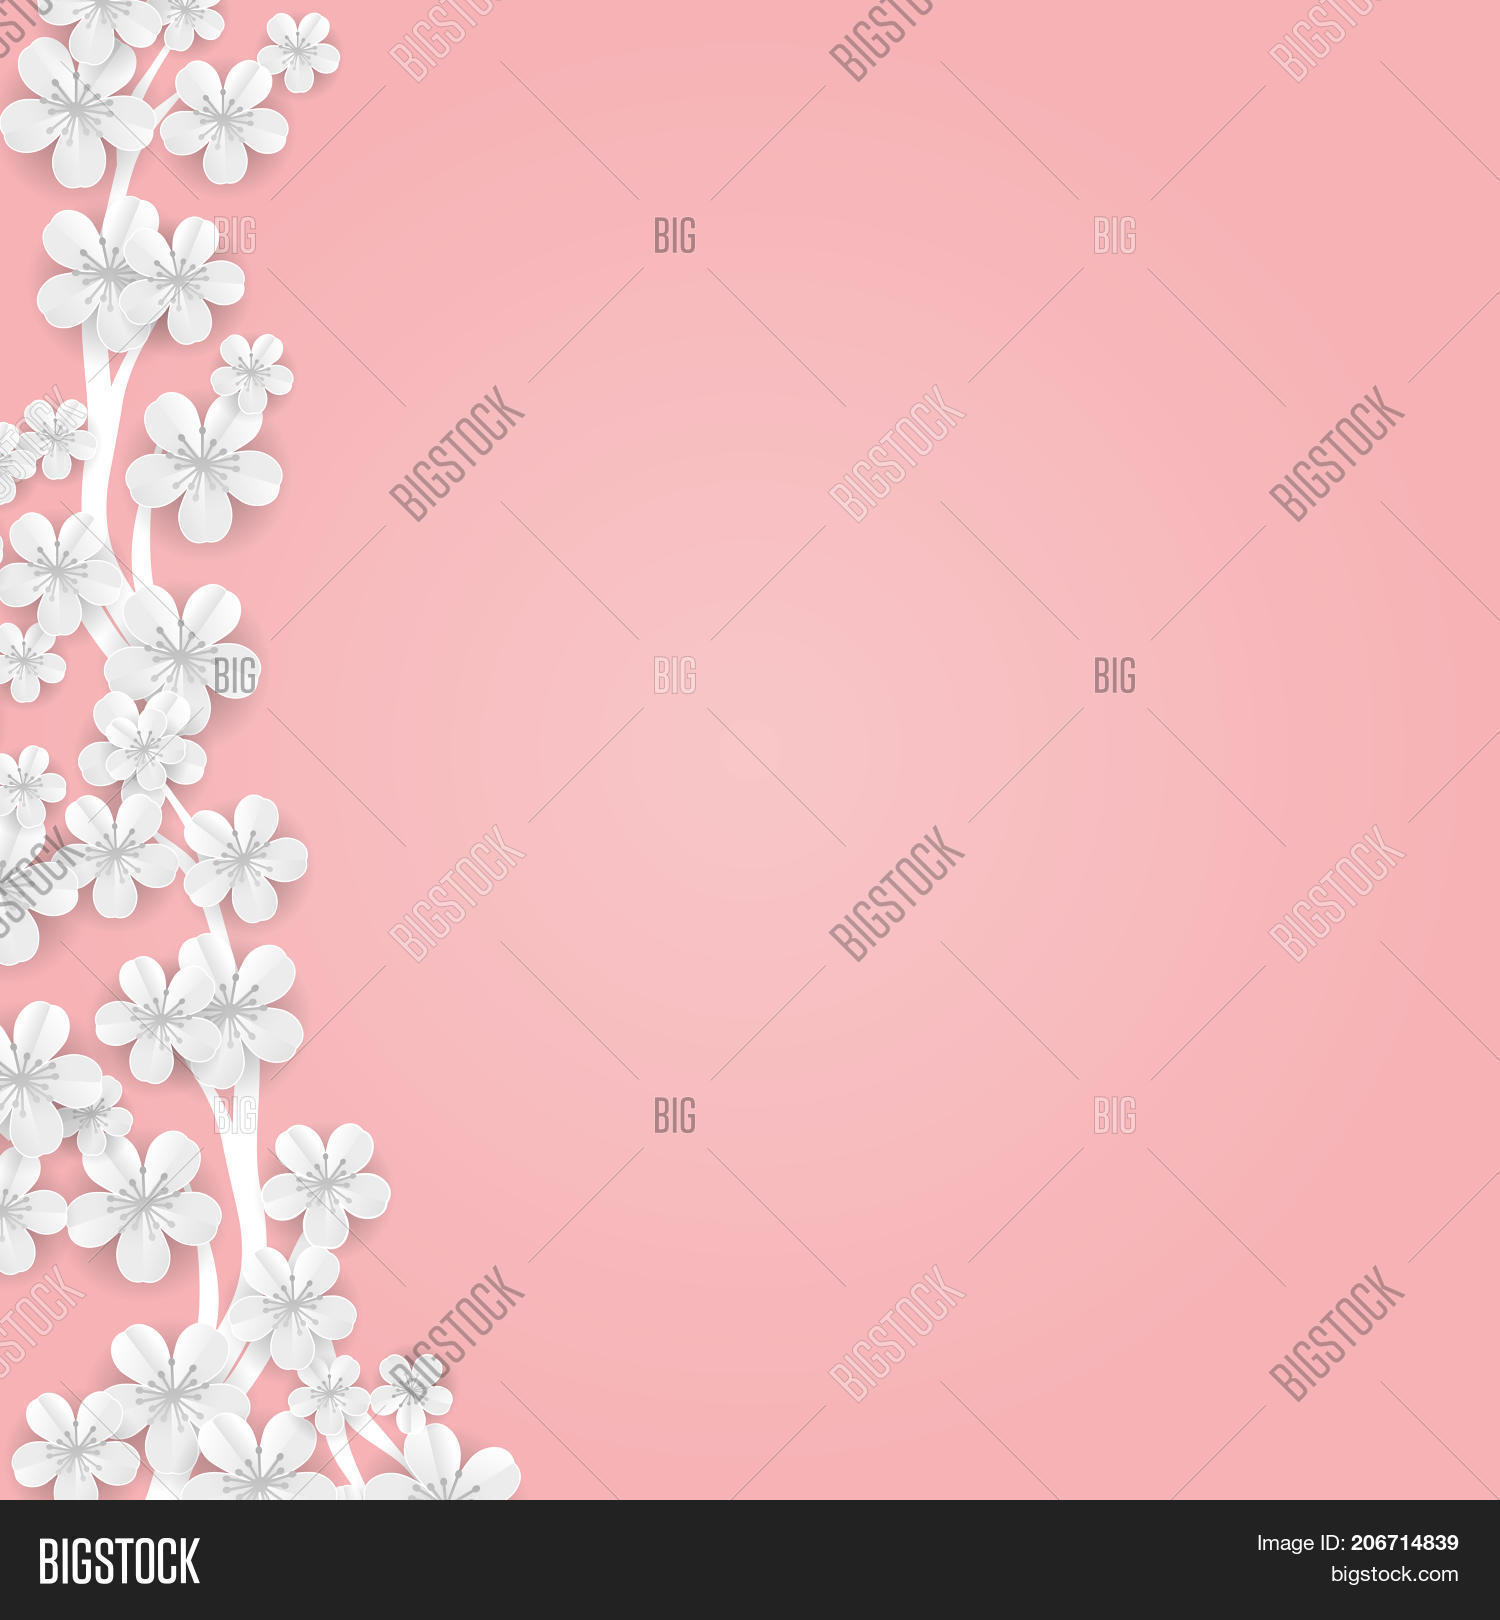 Flower pink background image photo free trial bigstock flower pink background invitation for wedding background anniversary marriage engagement birthday mightylinksfo